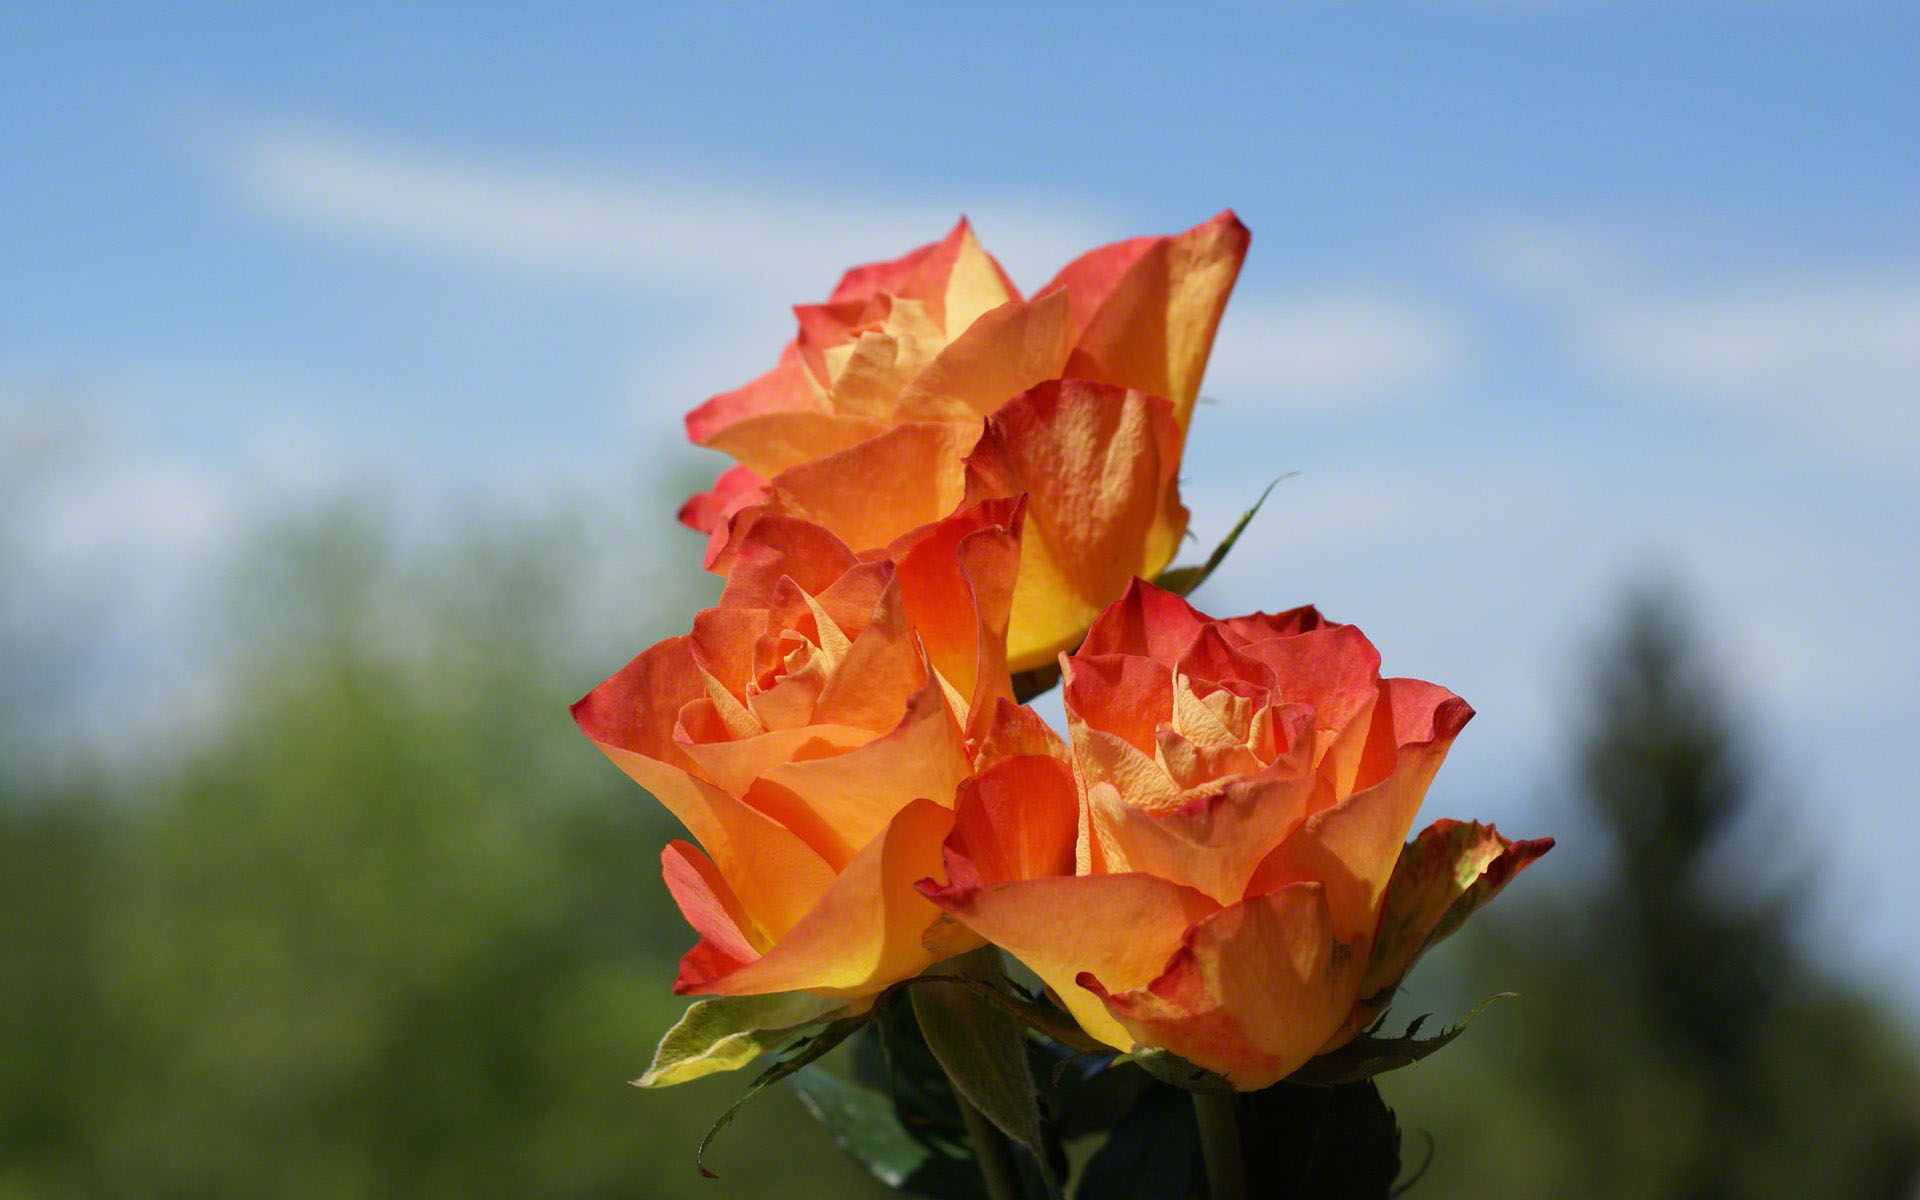 http://www.fabiovisentin.com/photography/photo/12/orange-roses-02742.jpg